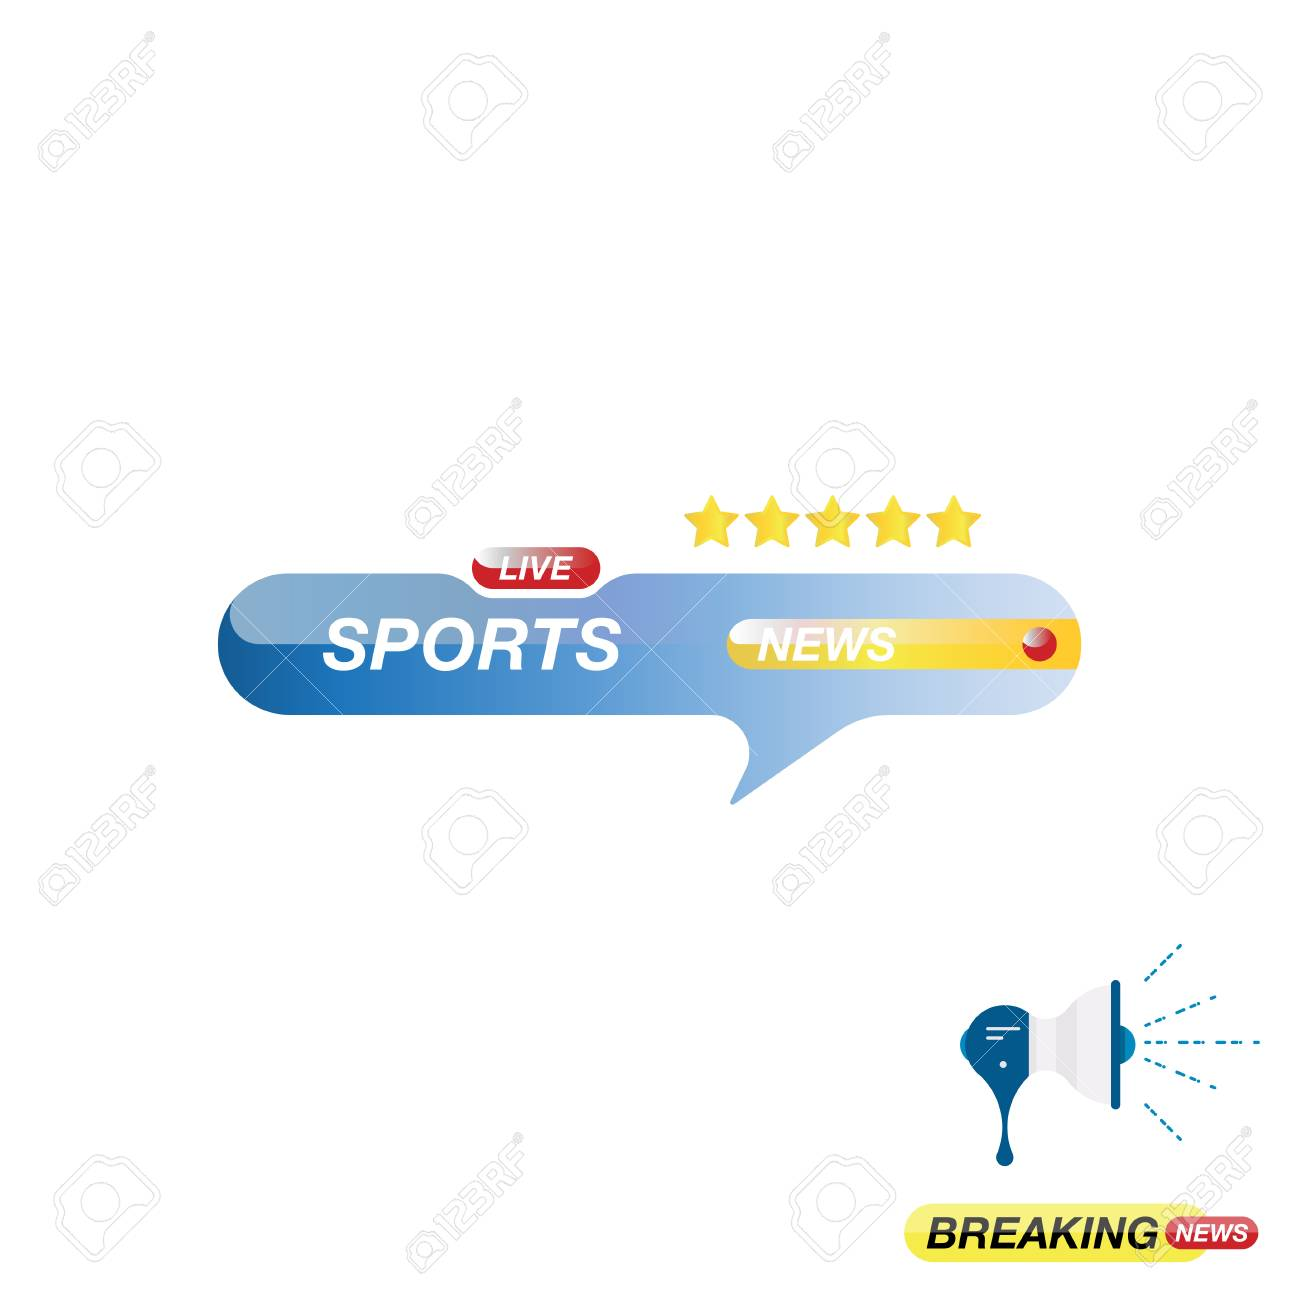 Sports news, icon for journalism of news TV channels and a loudspeaker